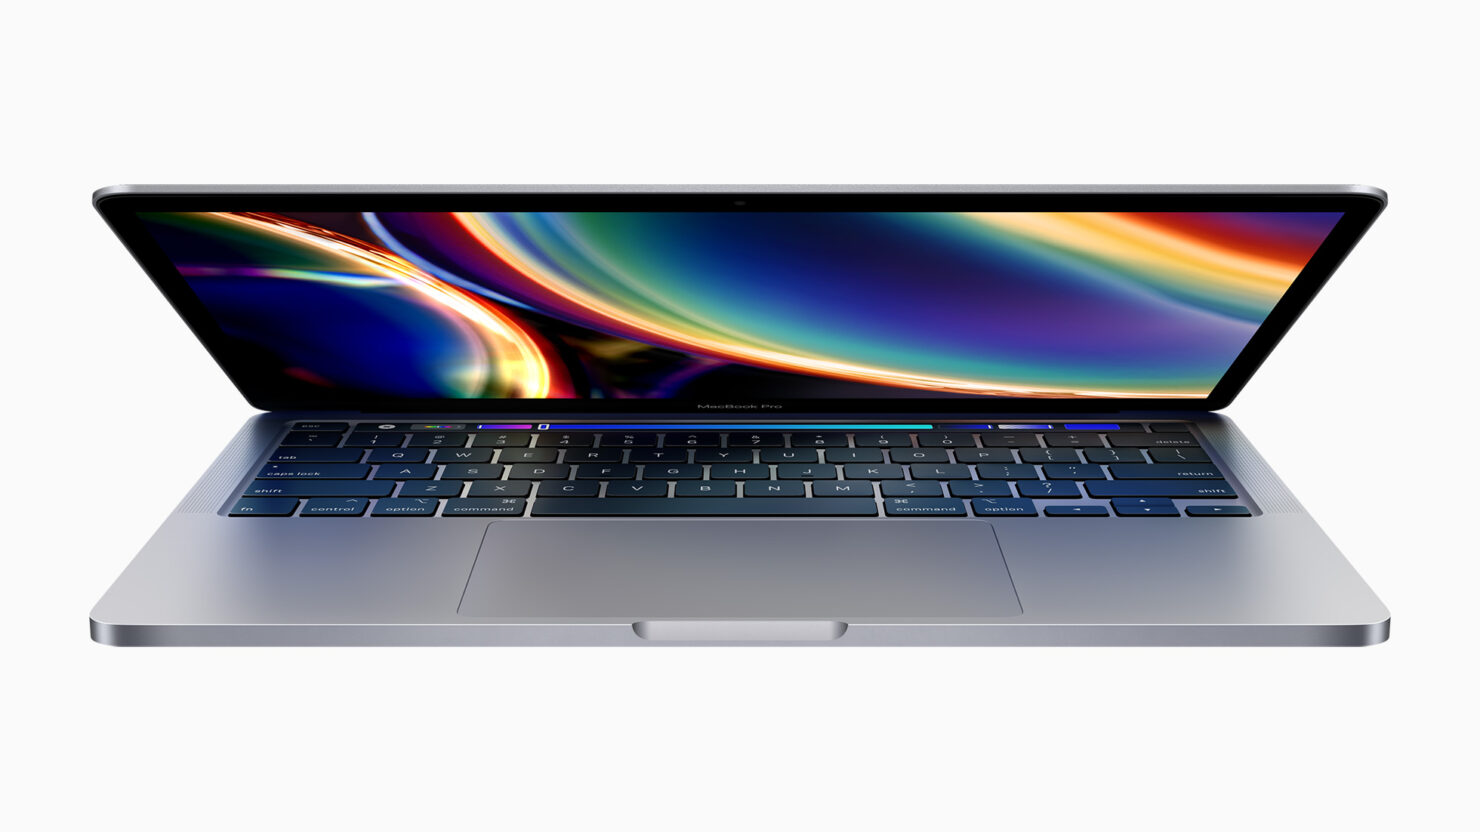 New 2020 13-inch MacBook Pro With Quad-Core CPU, 16GB RAM, Improved Keyboard and More Gets a $200 Discount on Amazon